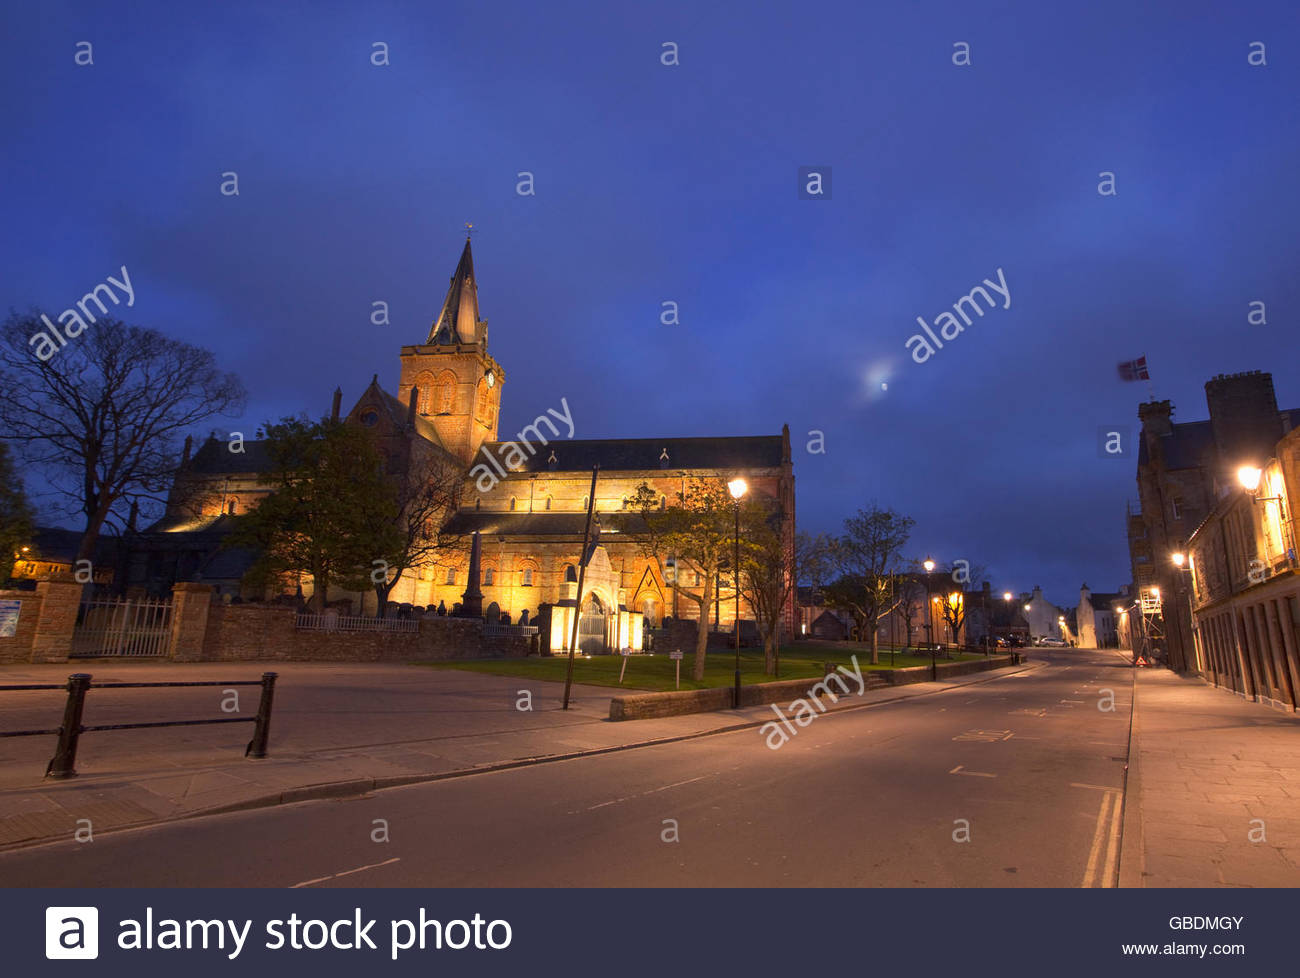 St Magnus Cathedral floodlit at dusk, Kirkwall, Mainland, Orkney, Scotland. - Stock Image